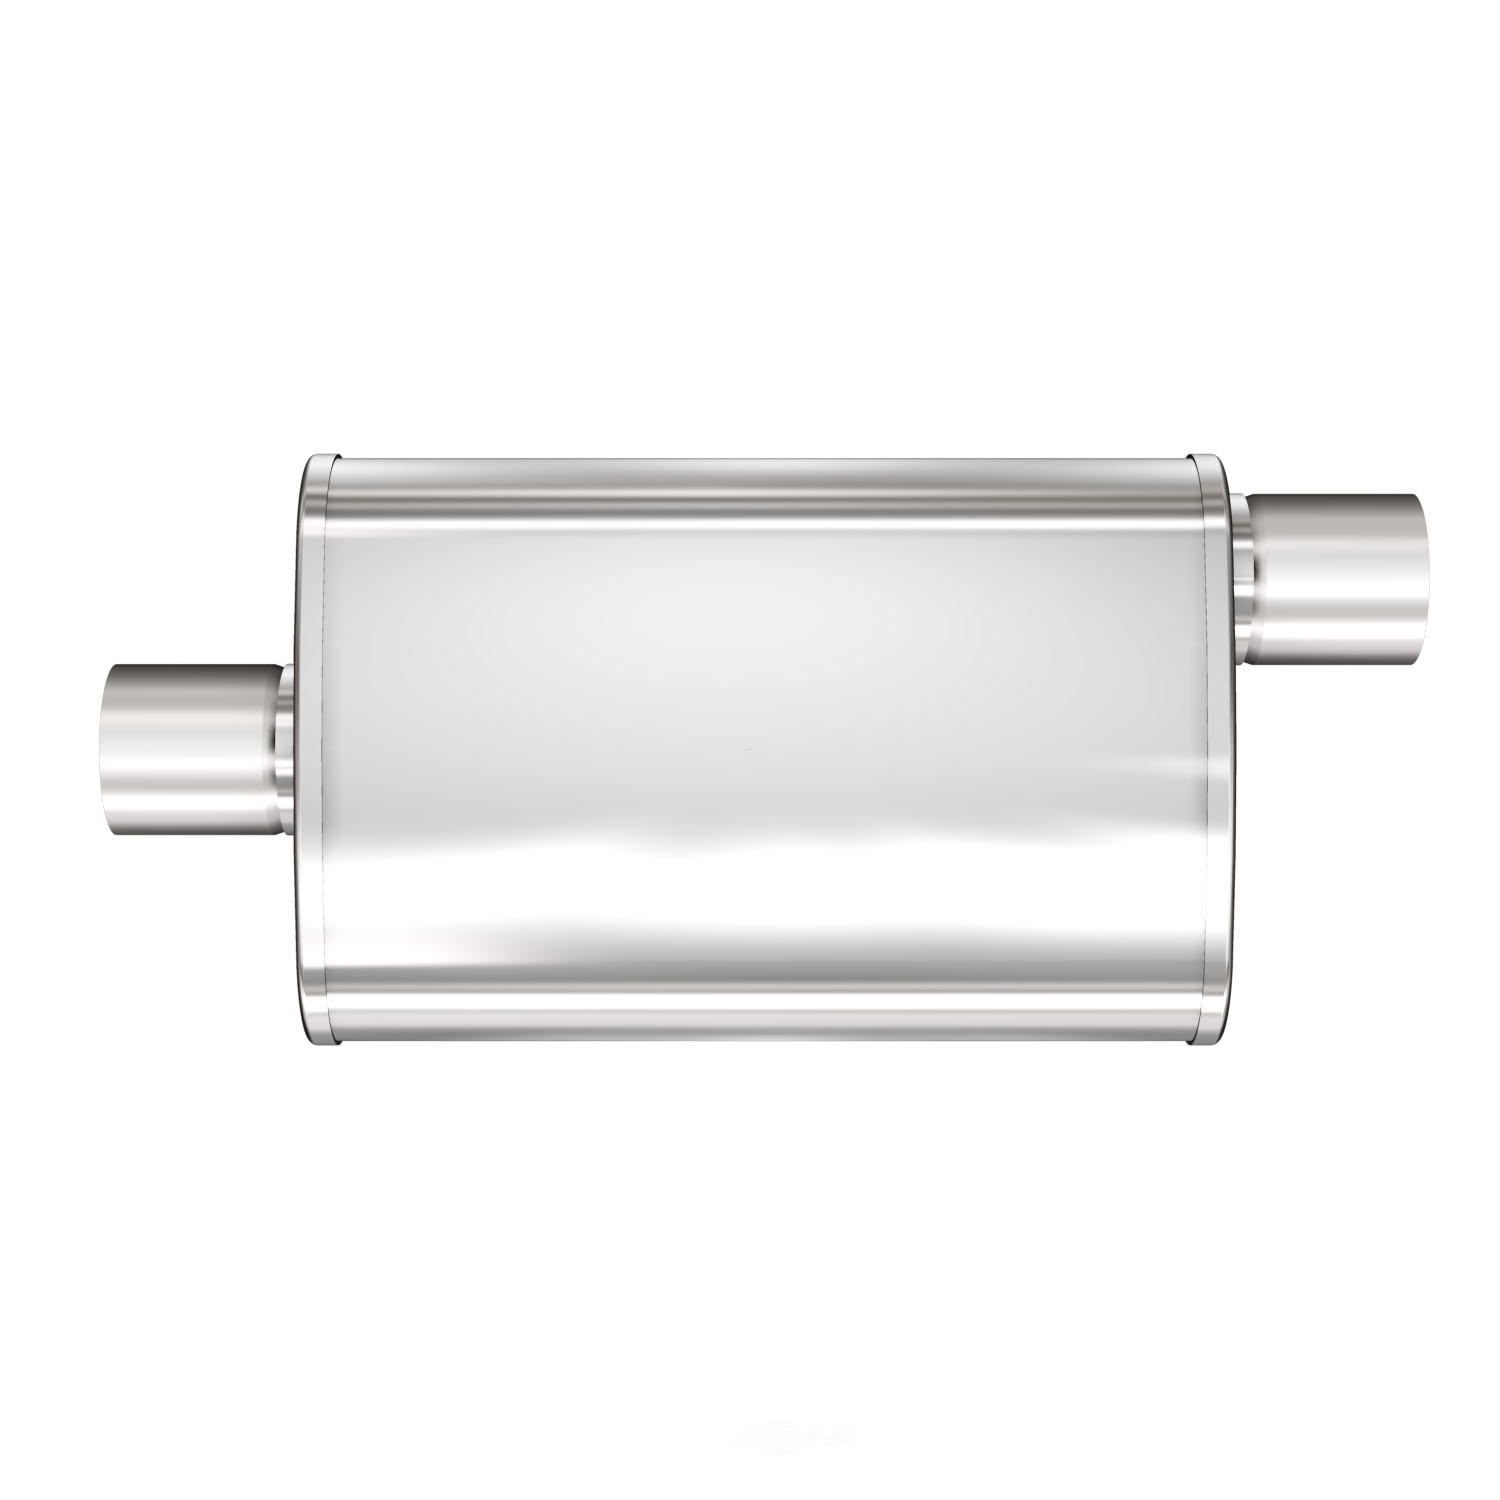 MAGNAFLOW PERF. EXHAUST - XL Satin Finish Oval Exhaust Muffler - MGF 13256